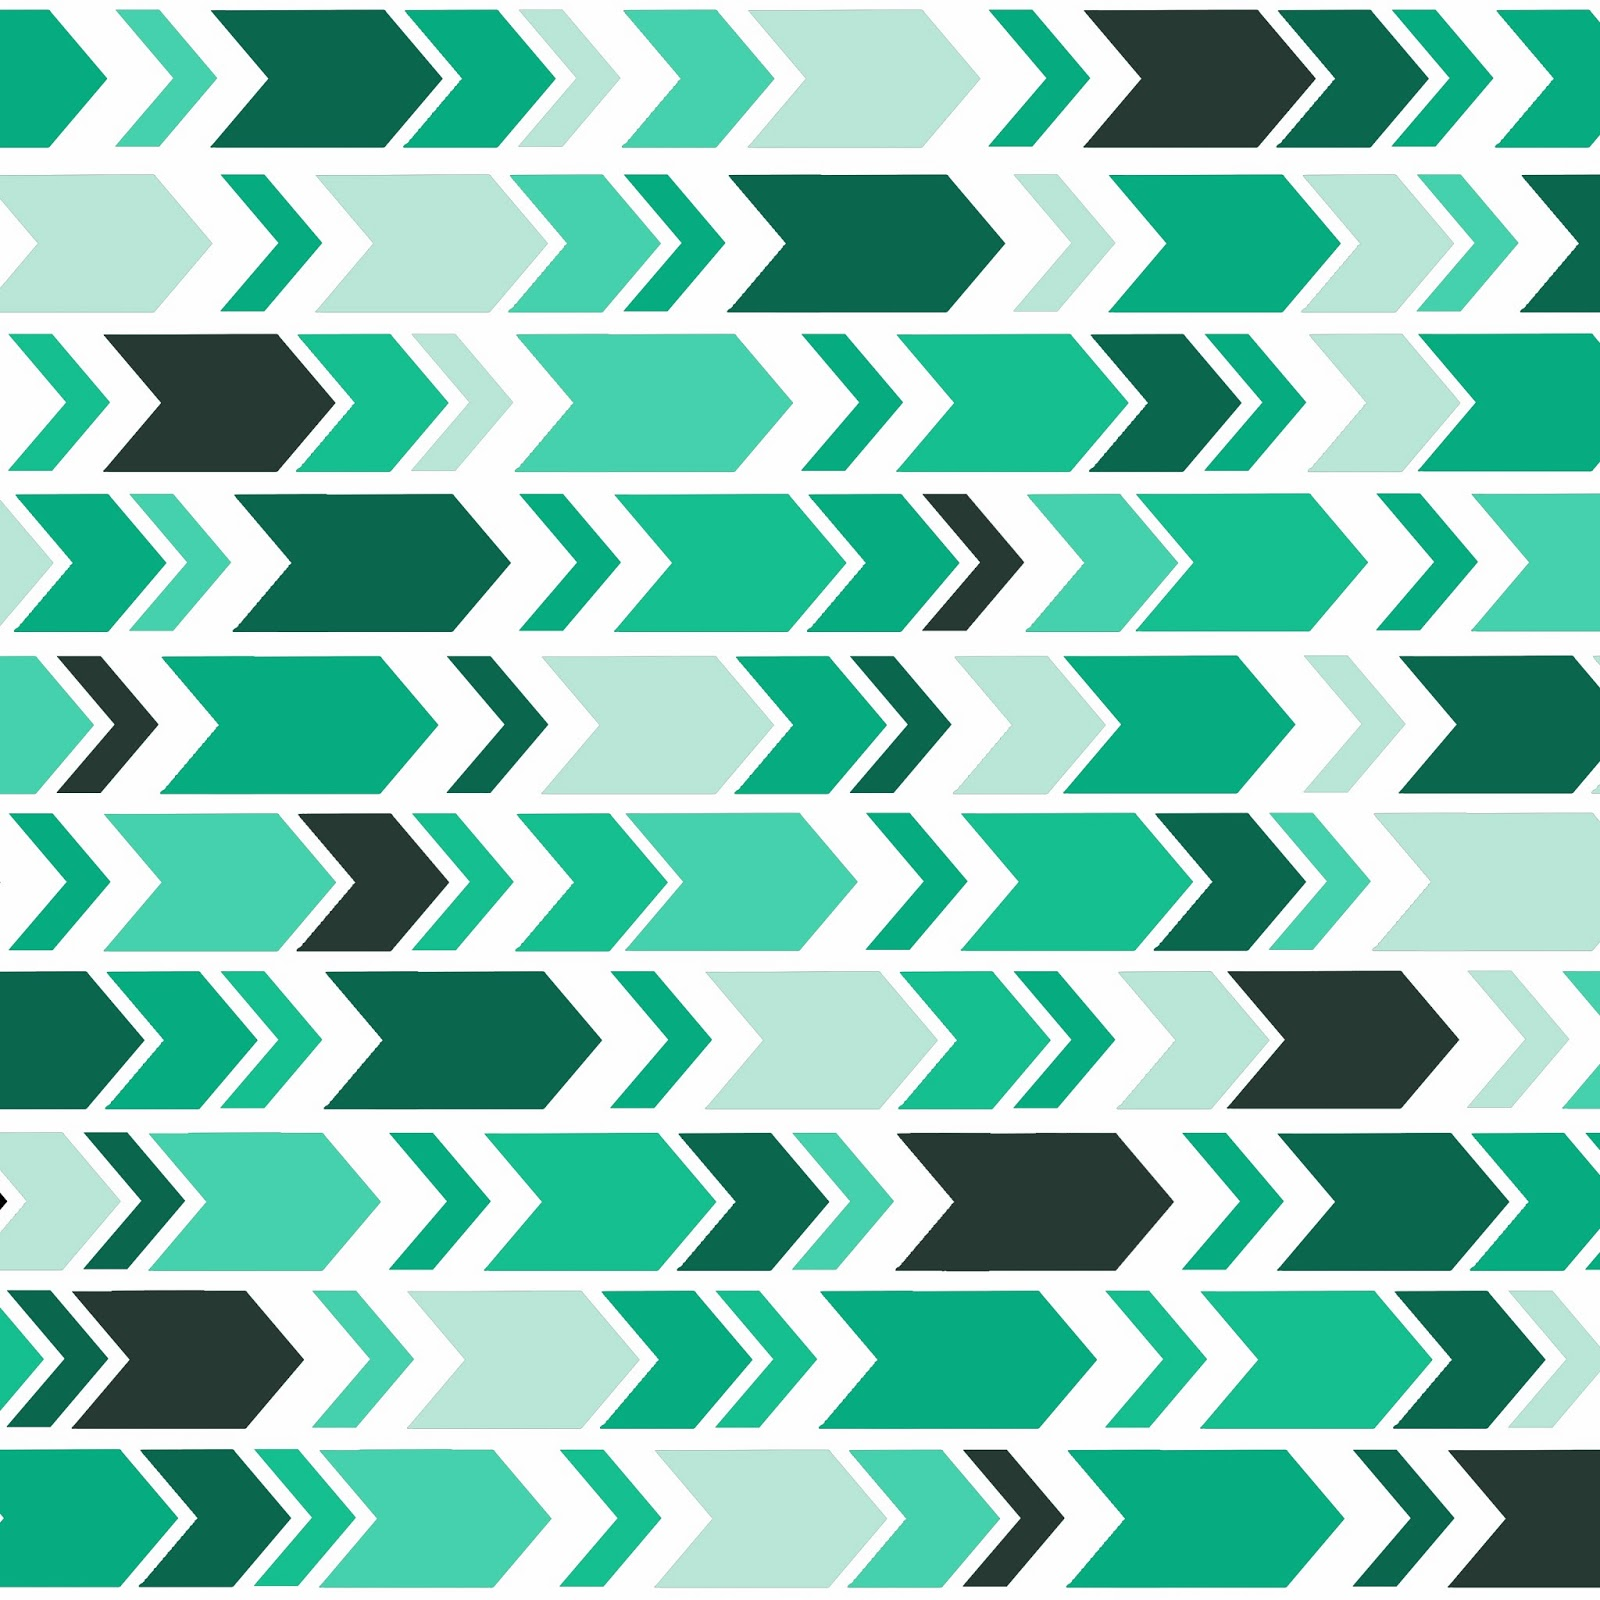 Arrowhead Chevron Printable Freebies Patterns